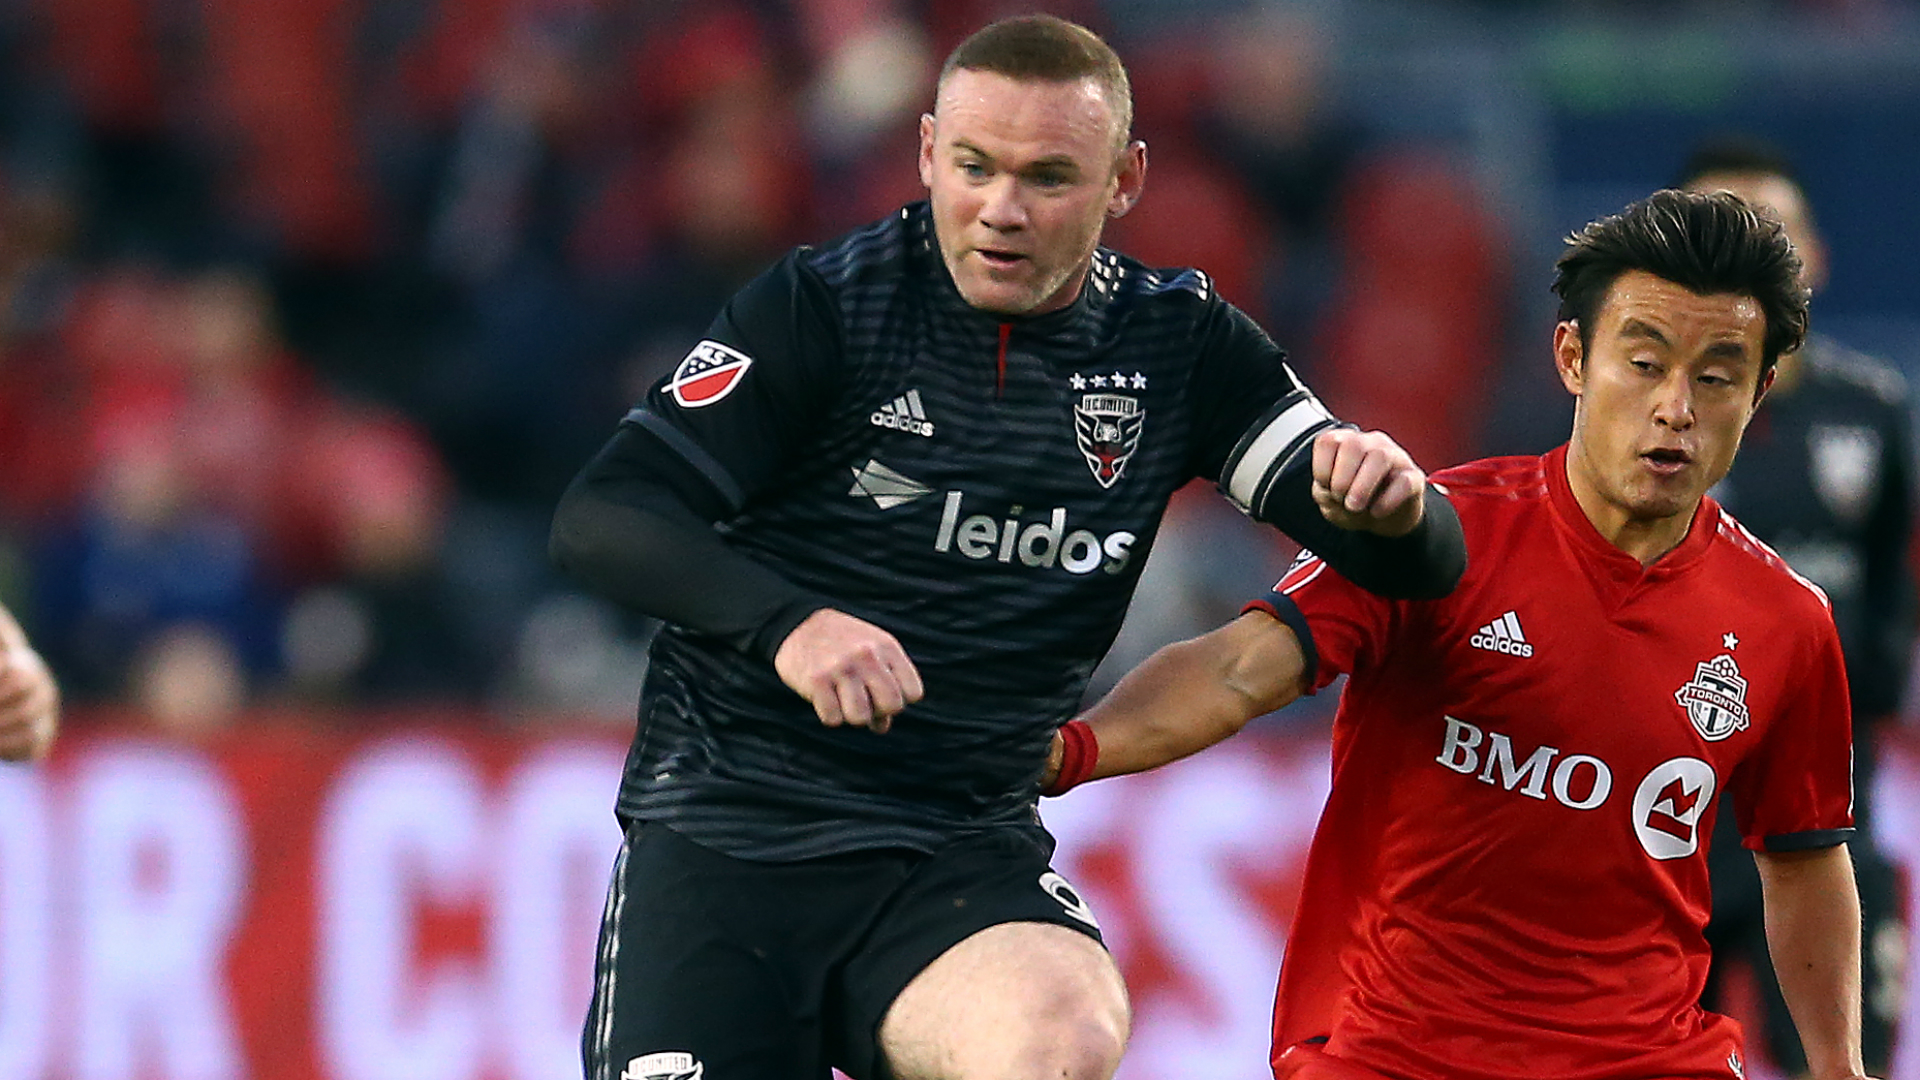 MLS playoff wrap: Wayne Rooney's DC United career ends with rout; Atlanta keeps title defense alive